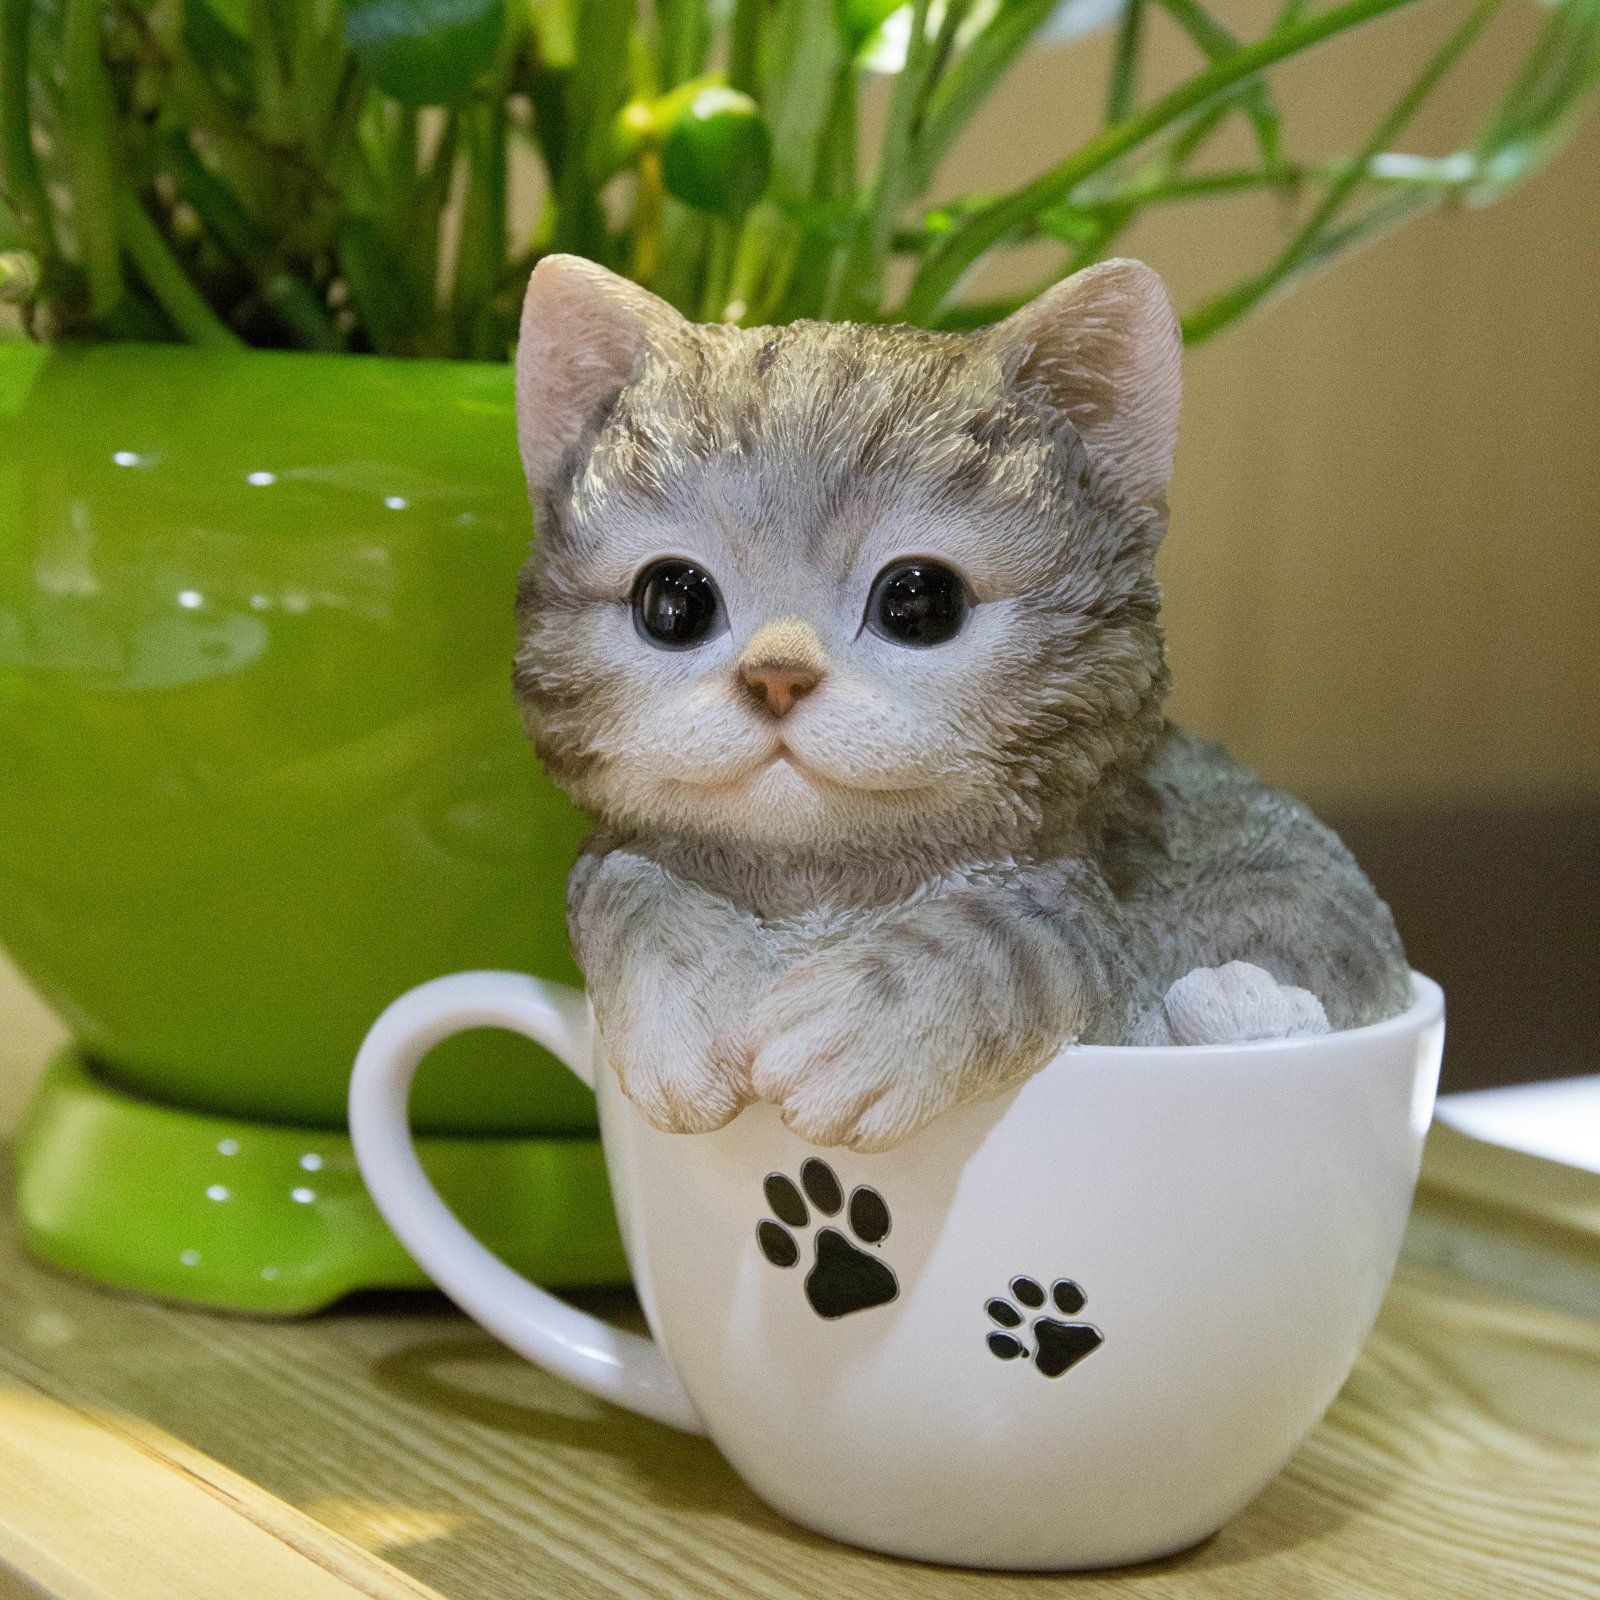 Dimensions: 5.25L x 5W x 5.75H in.. Crafted out of polyresin. Depicts kitten in teacup. Gray and white finish. Weight: .88 lbs.. Your kitchen décor will be un-fur-getable when you have the Hi-Line Gift Ltd. Teacup Kitten Grey Tabby Statue on display. The playful polyresin sculpture depicts a tiny gray kitten filling a white paw print-patterned teacup - 87707-B.